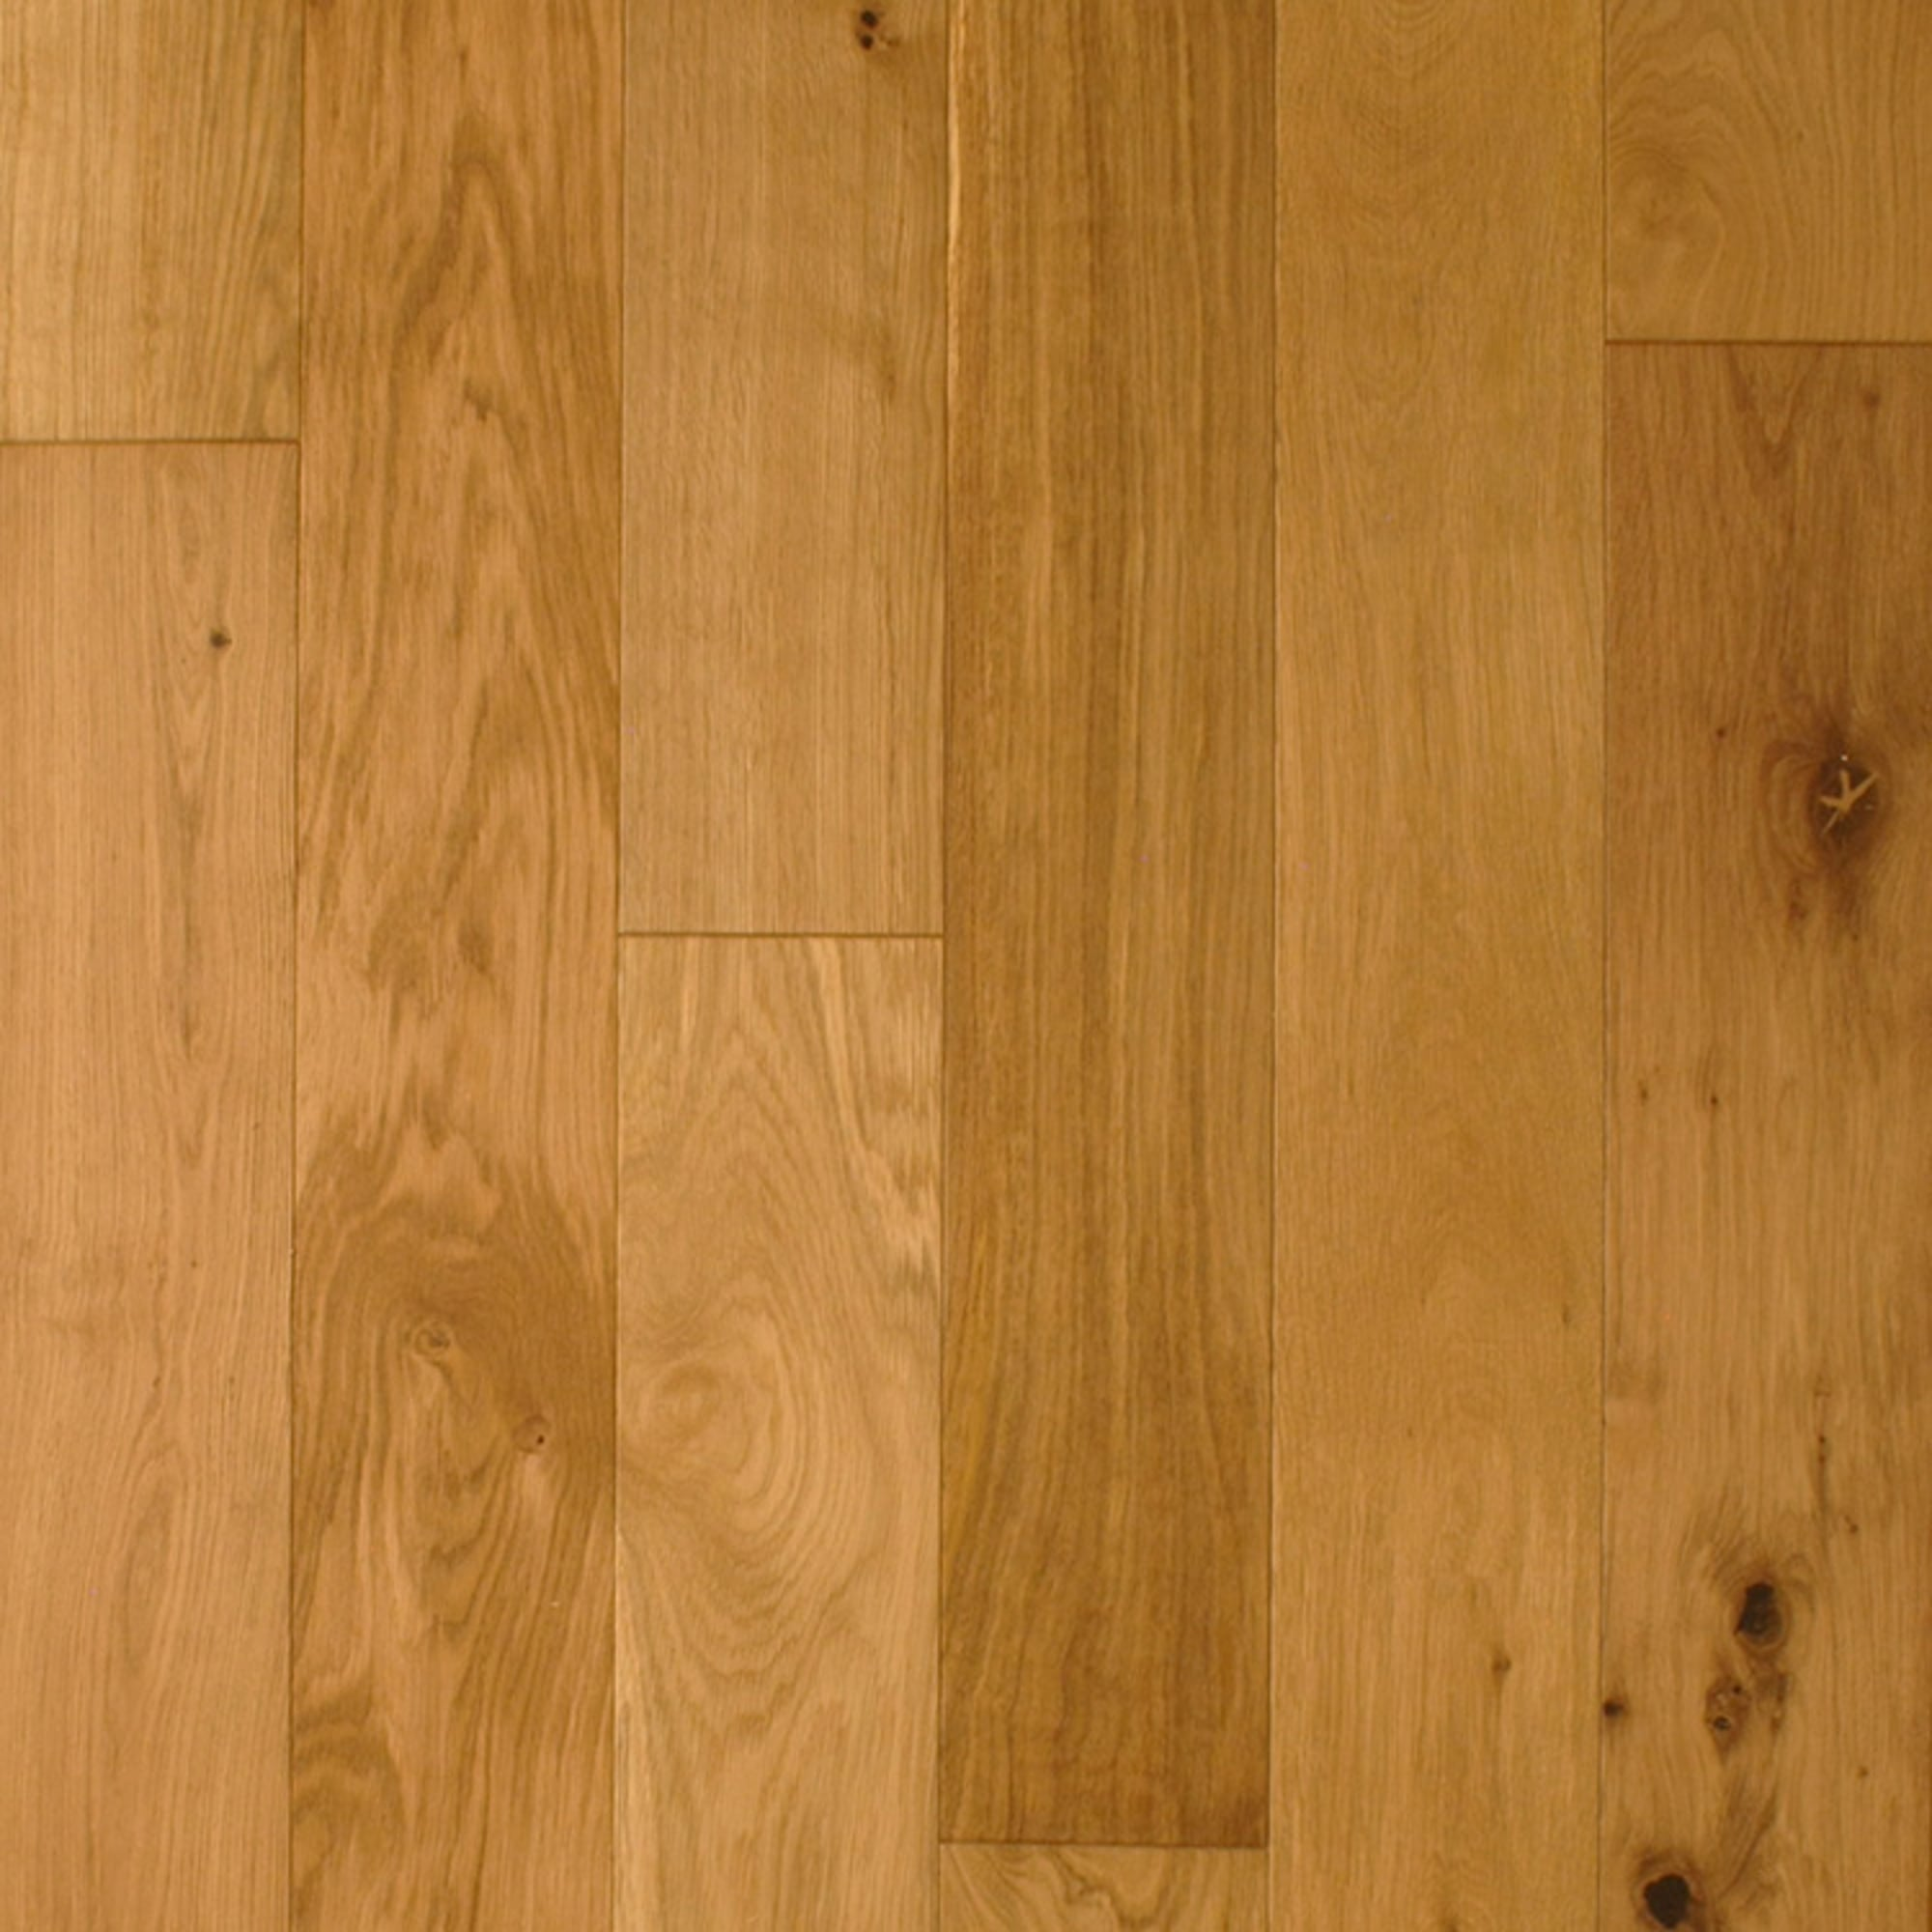 Wood flooring multi layer 18x150mm lacquered engineered for Engineered oak flooring